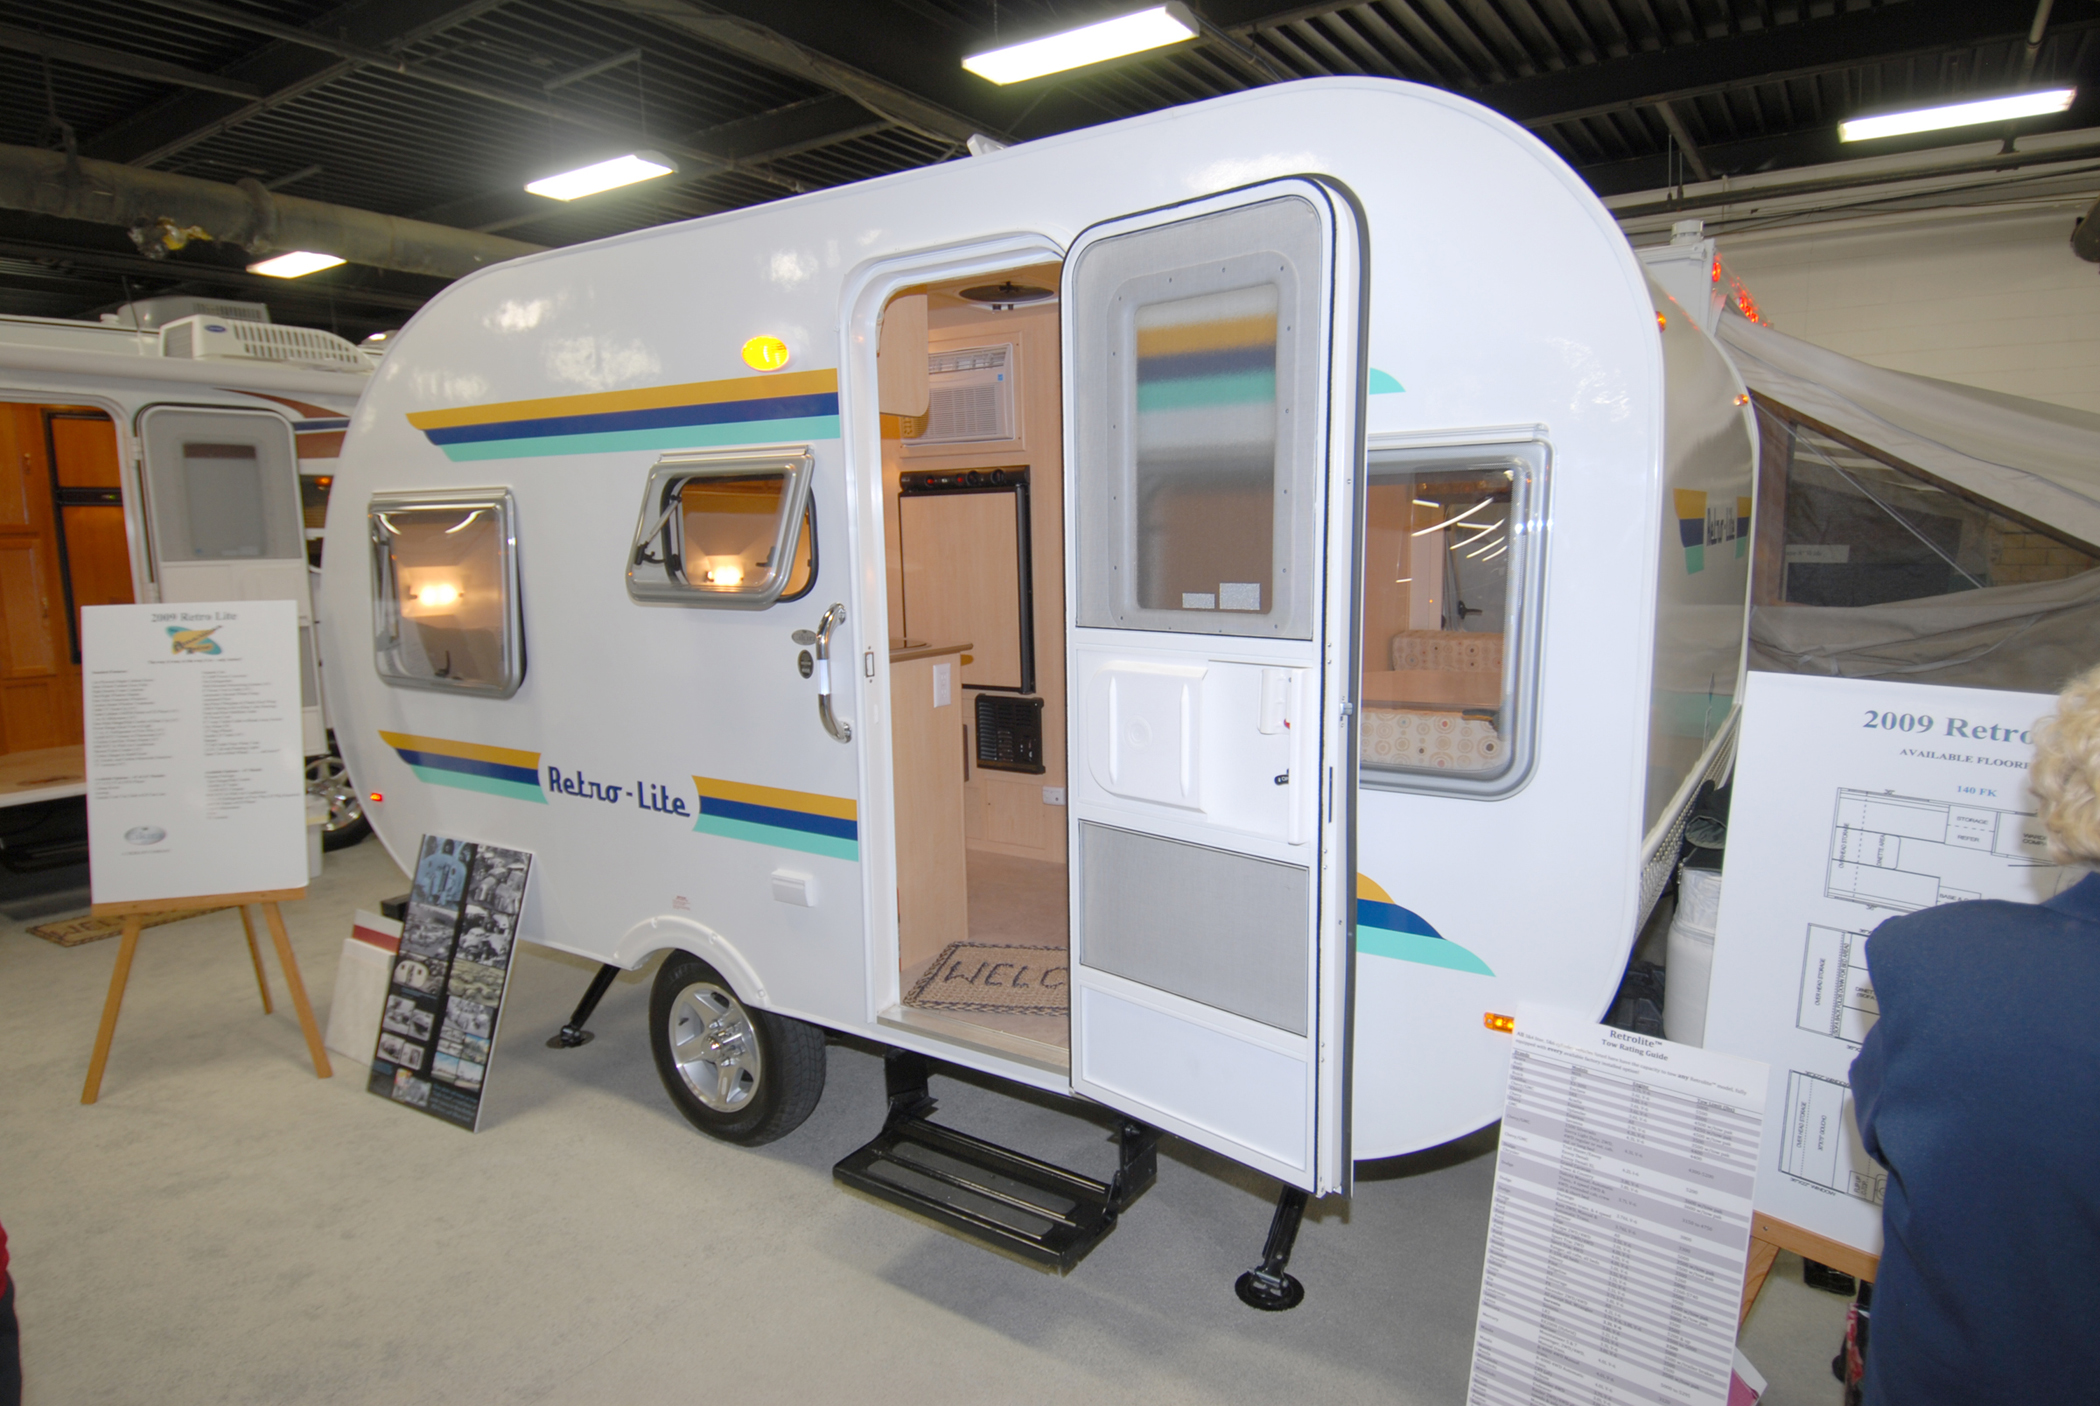 Retro Style Trailers Make A Lot Of Sense For Todays Modern Market In Keeping With The Oldies Theyre Small Which Makes Them Towable By Smaller